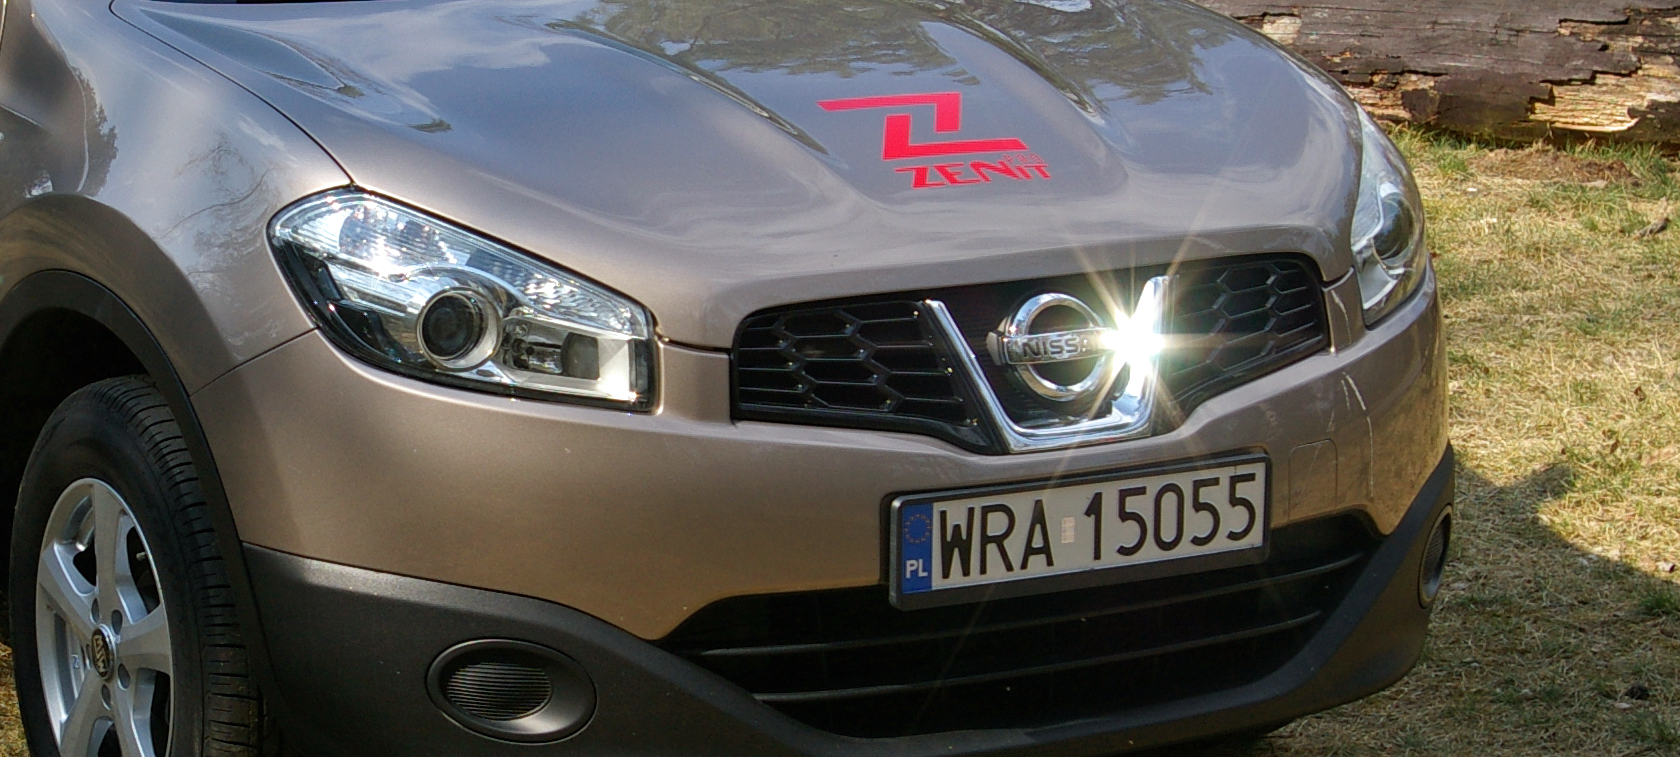 Nissan Qashqai LPG - half-priced power